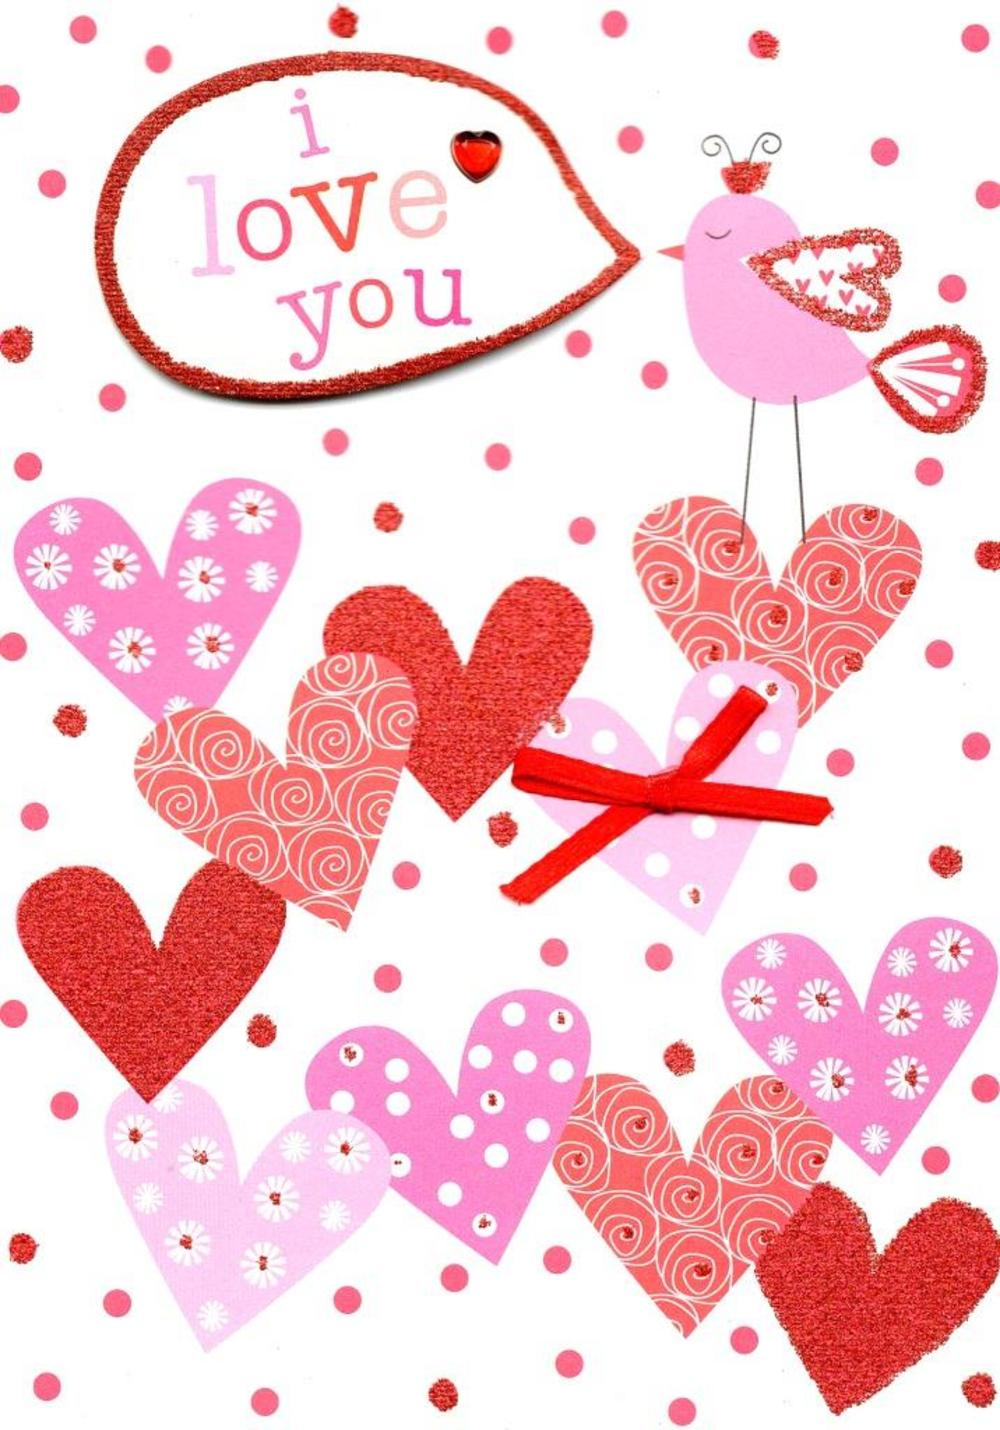 I Love You Valentine's Day Greeting Card